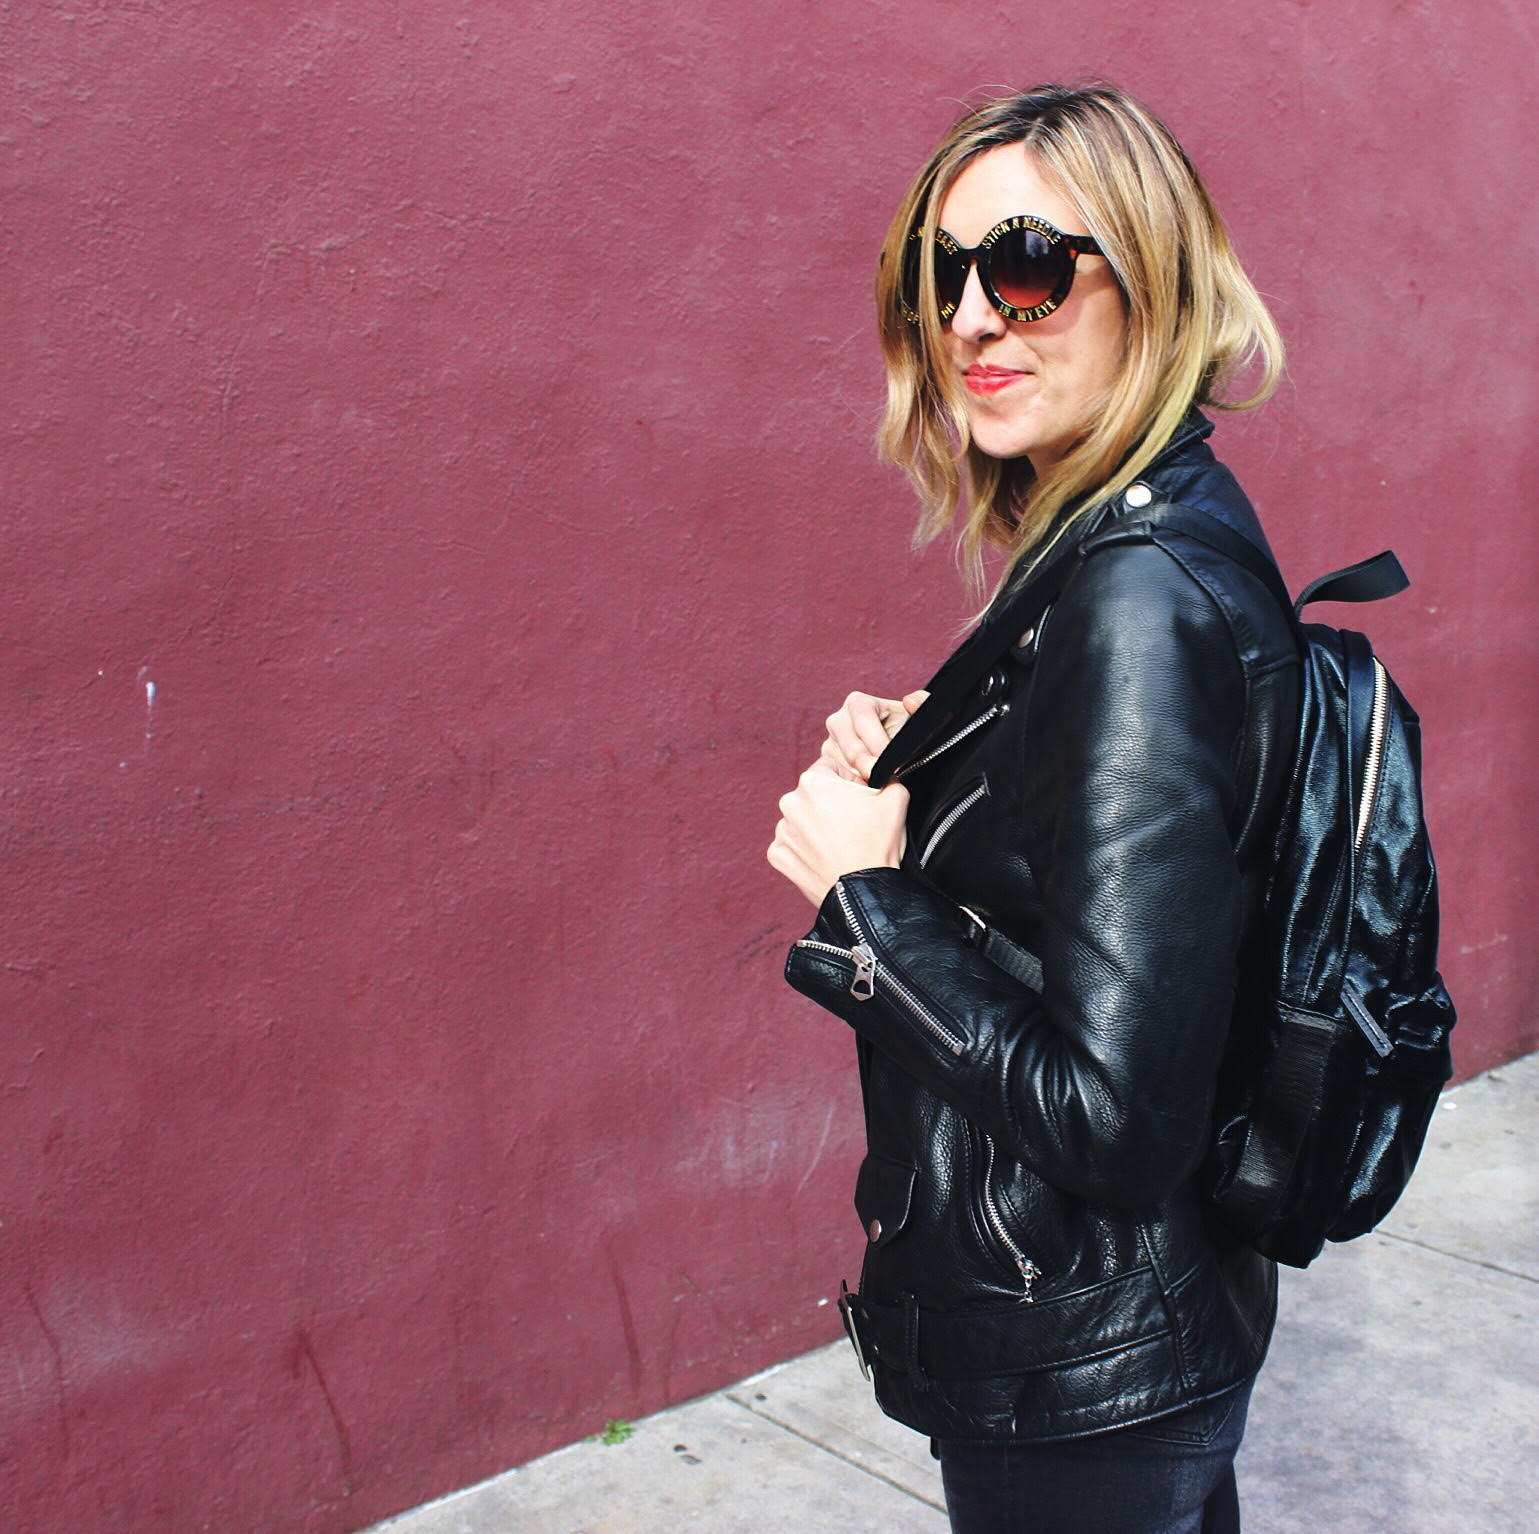 """My caption opened with the emoji rock n roll hand and then the copy """"Jacket by Wunderleathers, backpack from Galian Handbags. Taken at the Georgia Theater by Ben Alleman"""" (this is a fashion x music x travel post!)"""